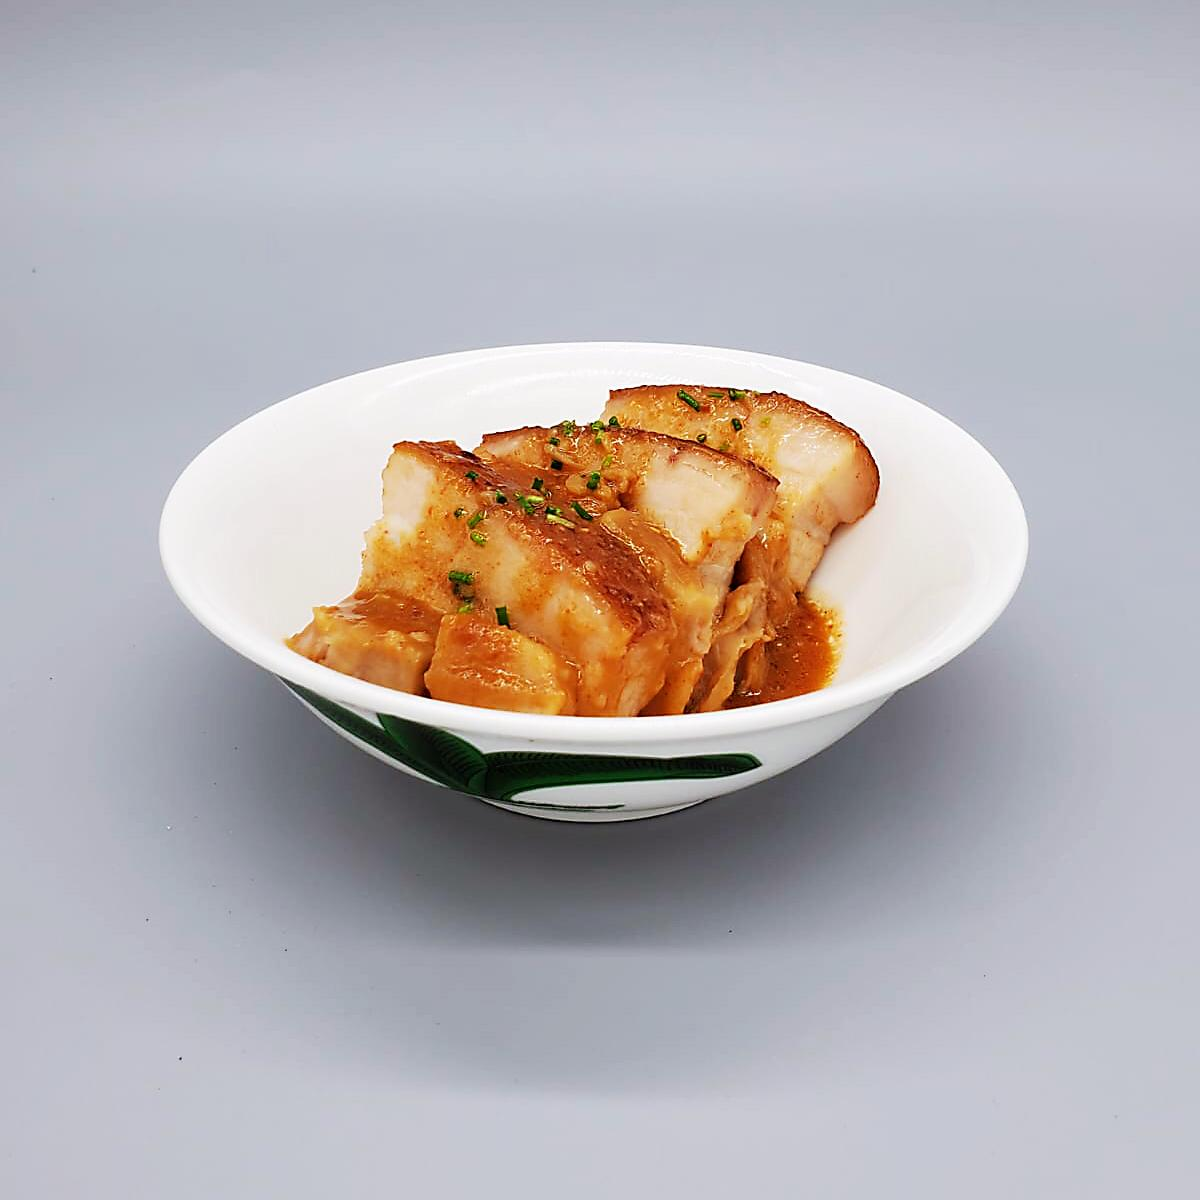 Steamed Pork belly with Fermented Tarocurd (New Product)